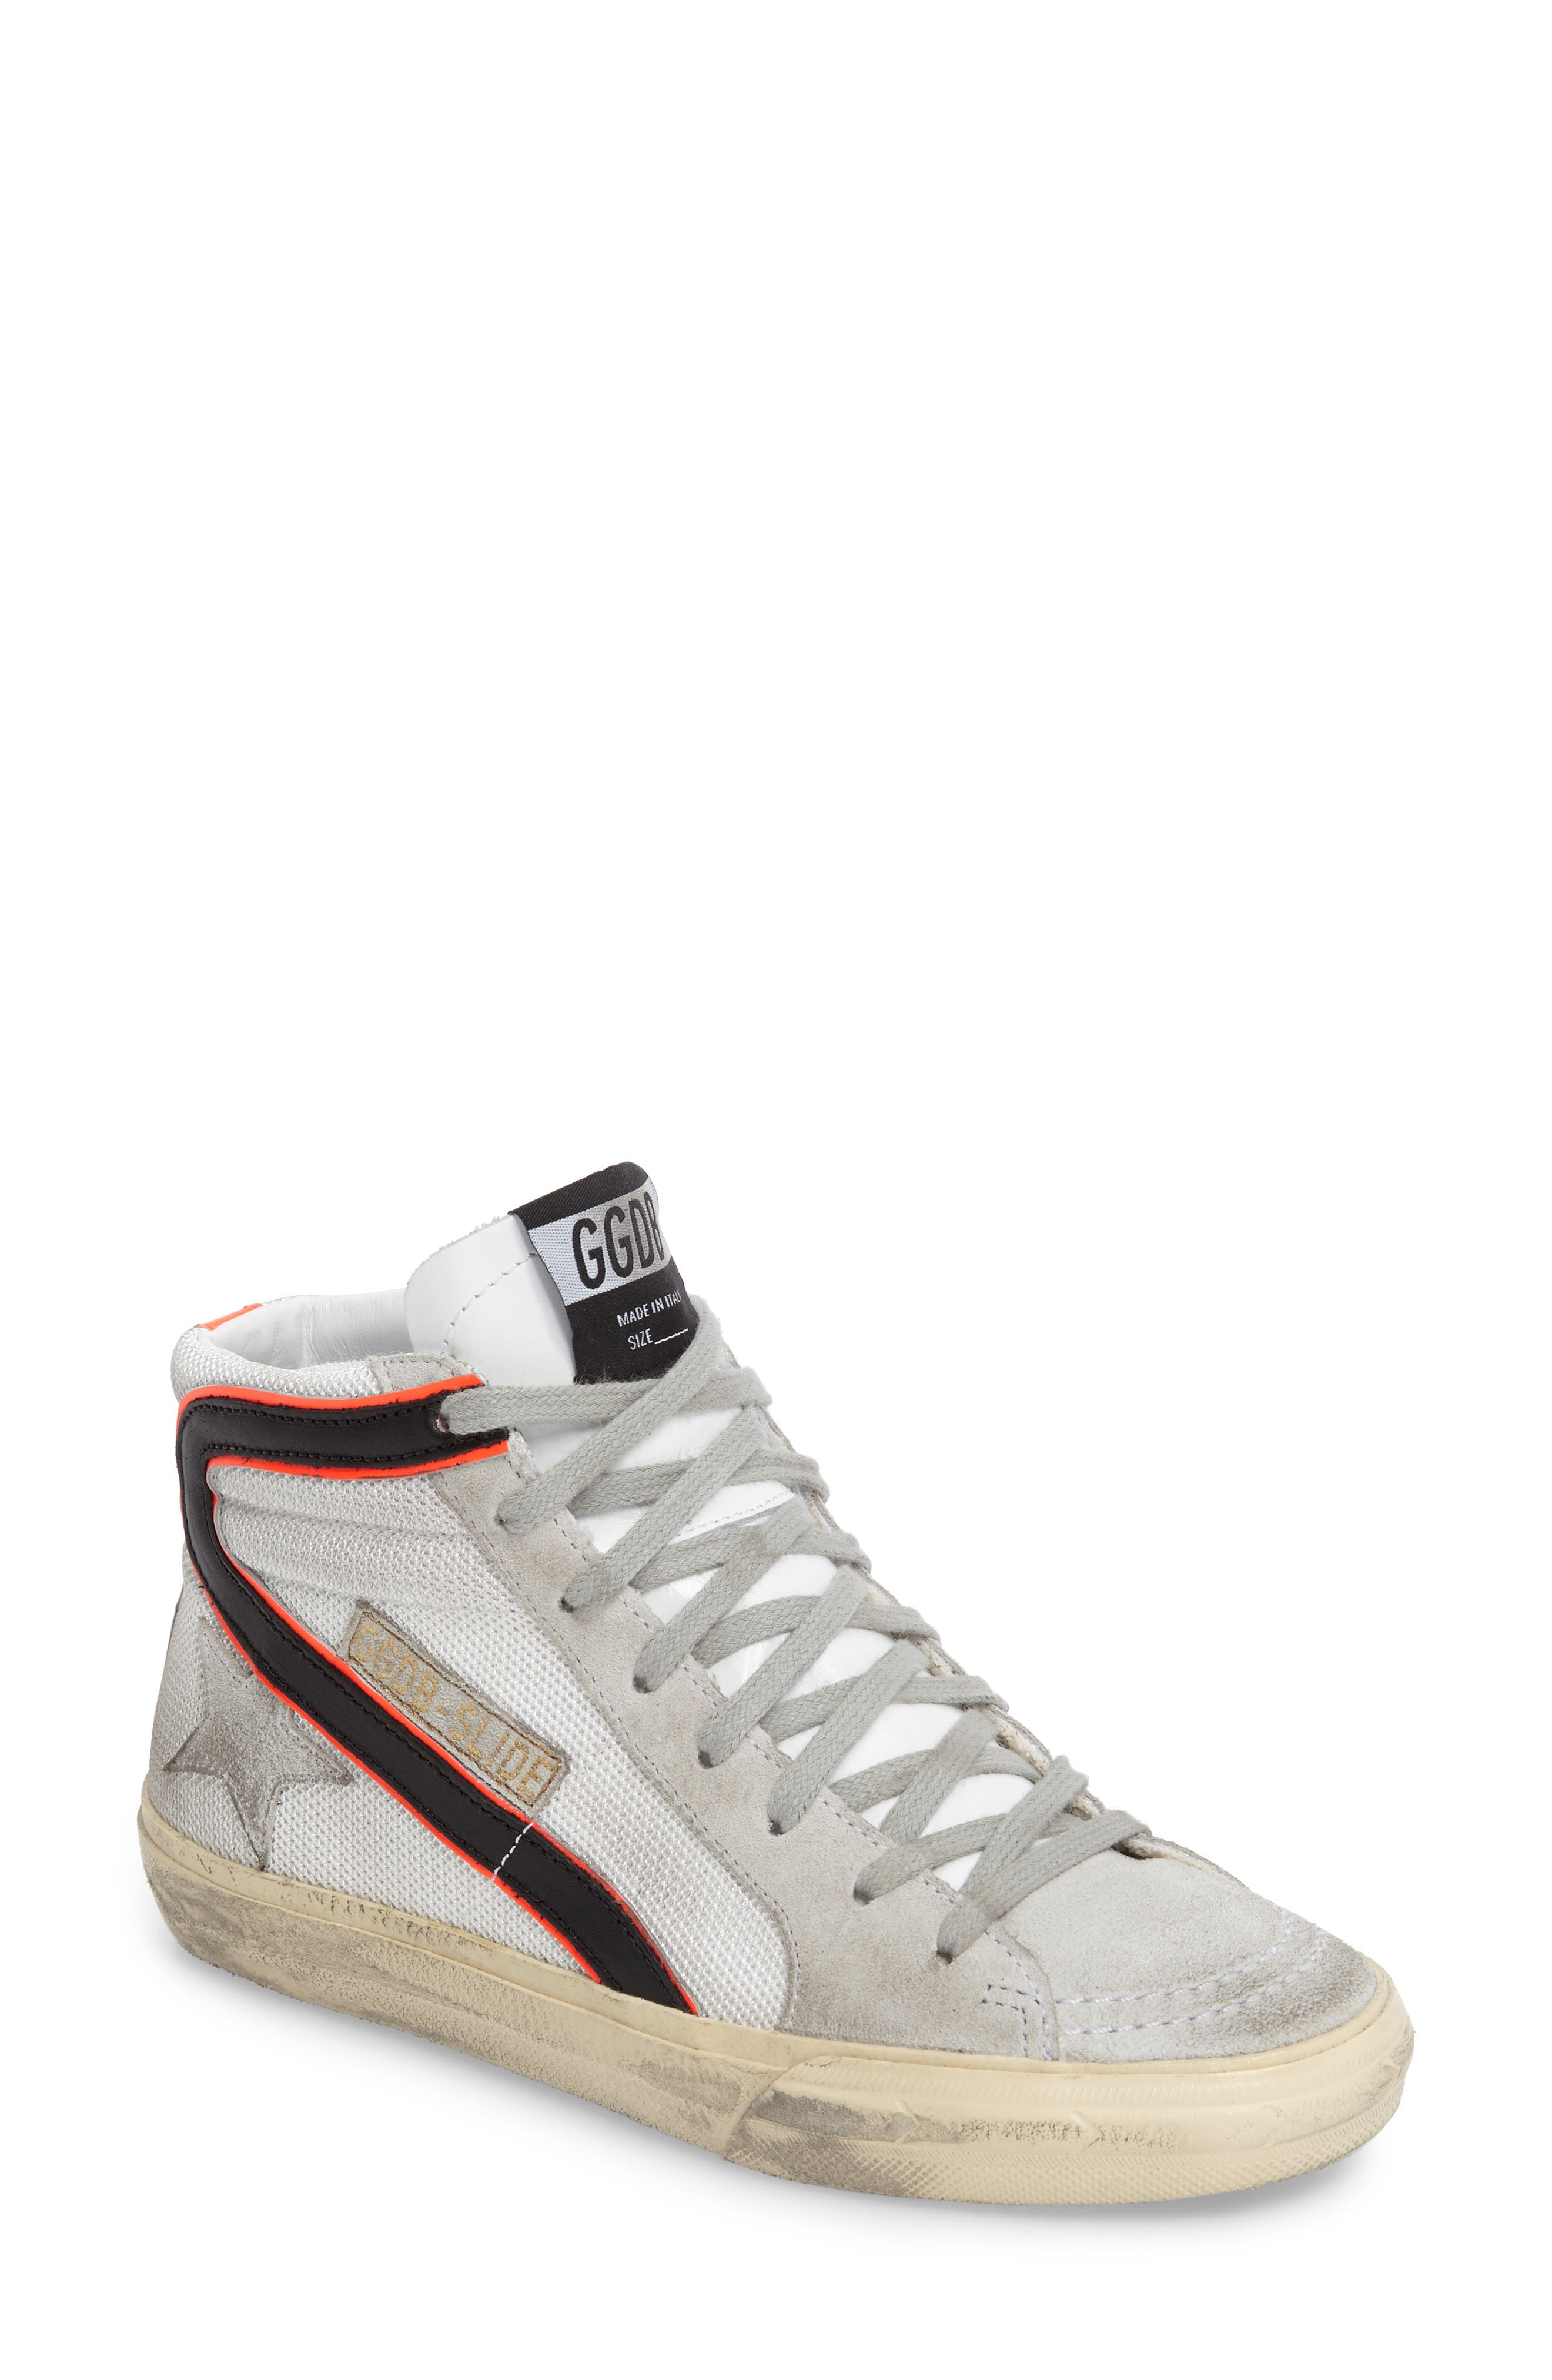 Alternate Image 1 Selected - Golden Goose Slide High Top Sneaker (Women)